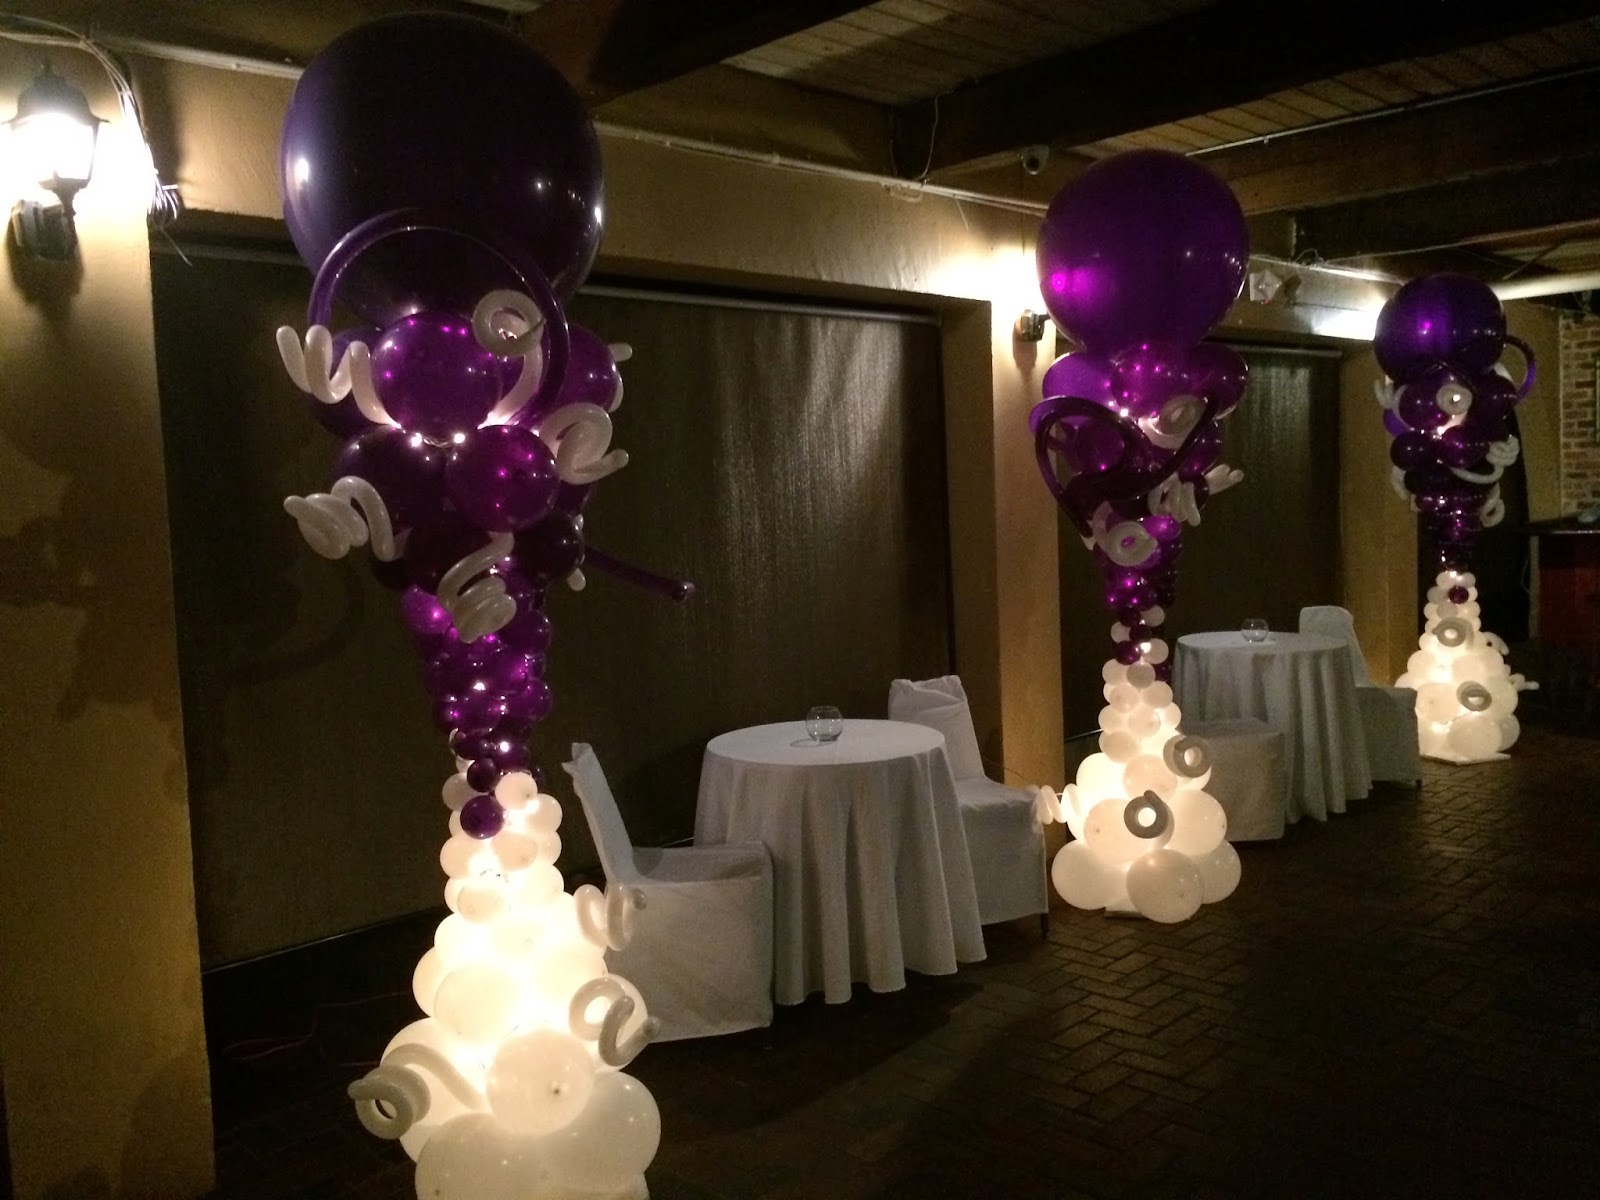 Balloon columns with lights